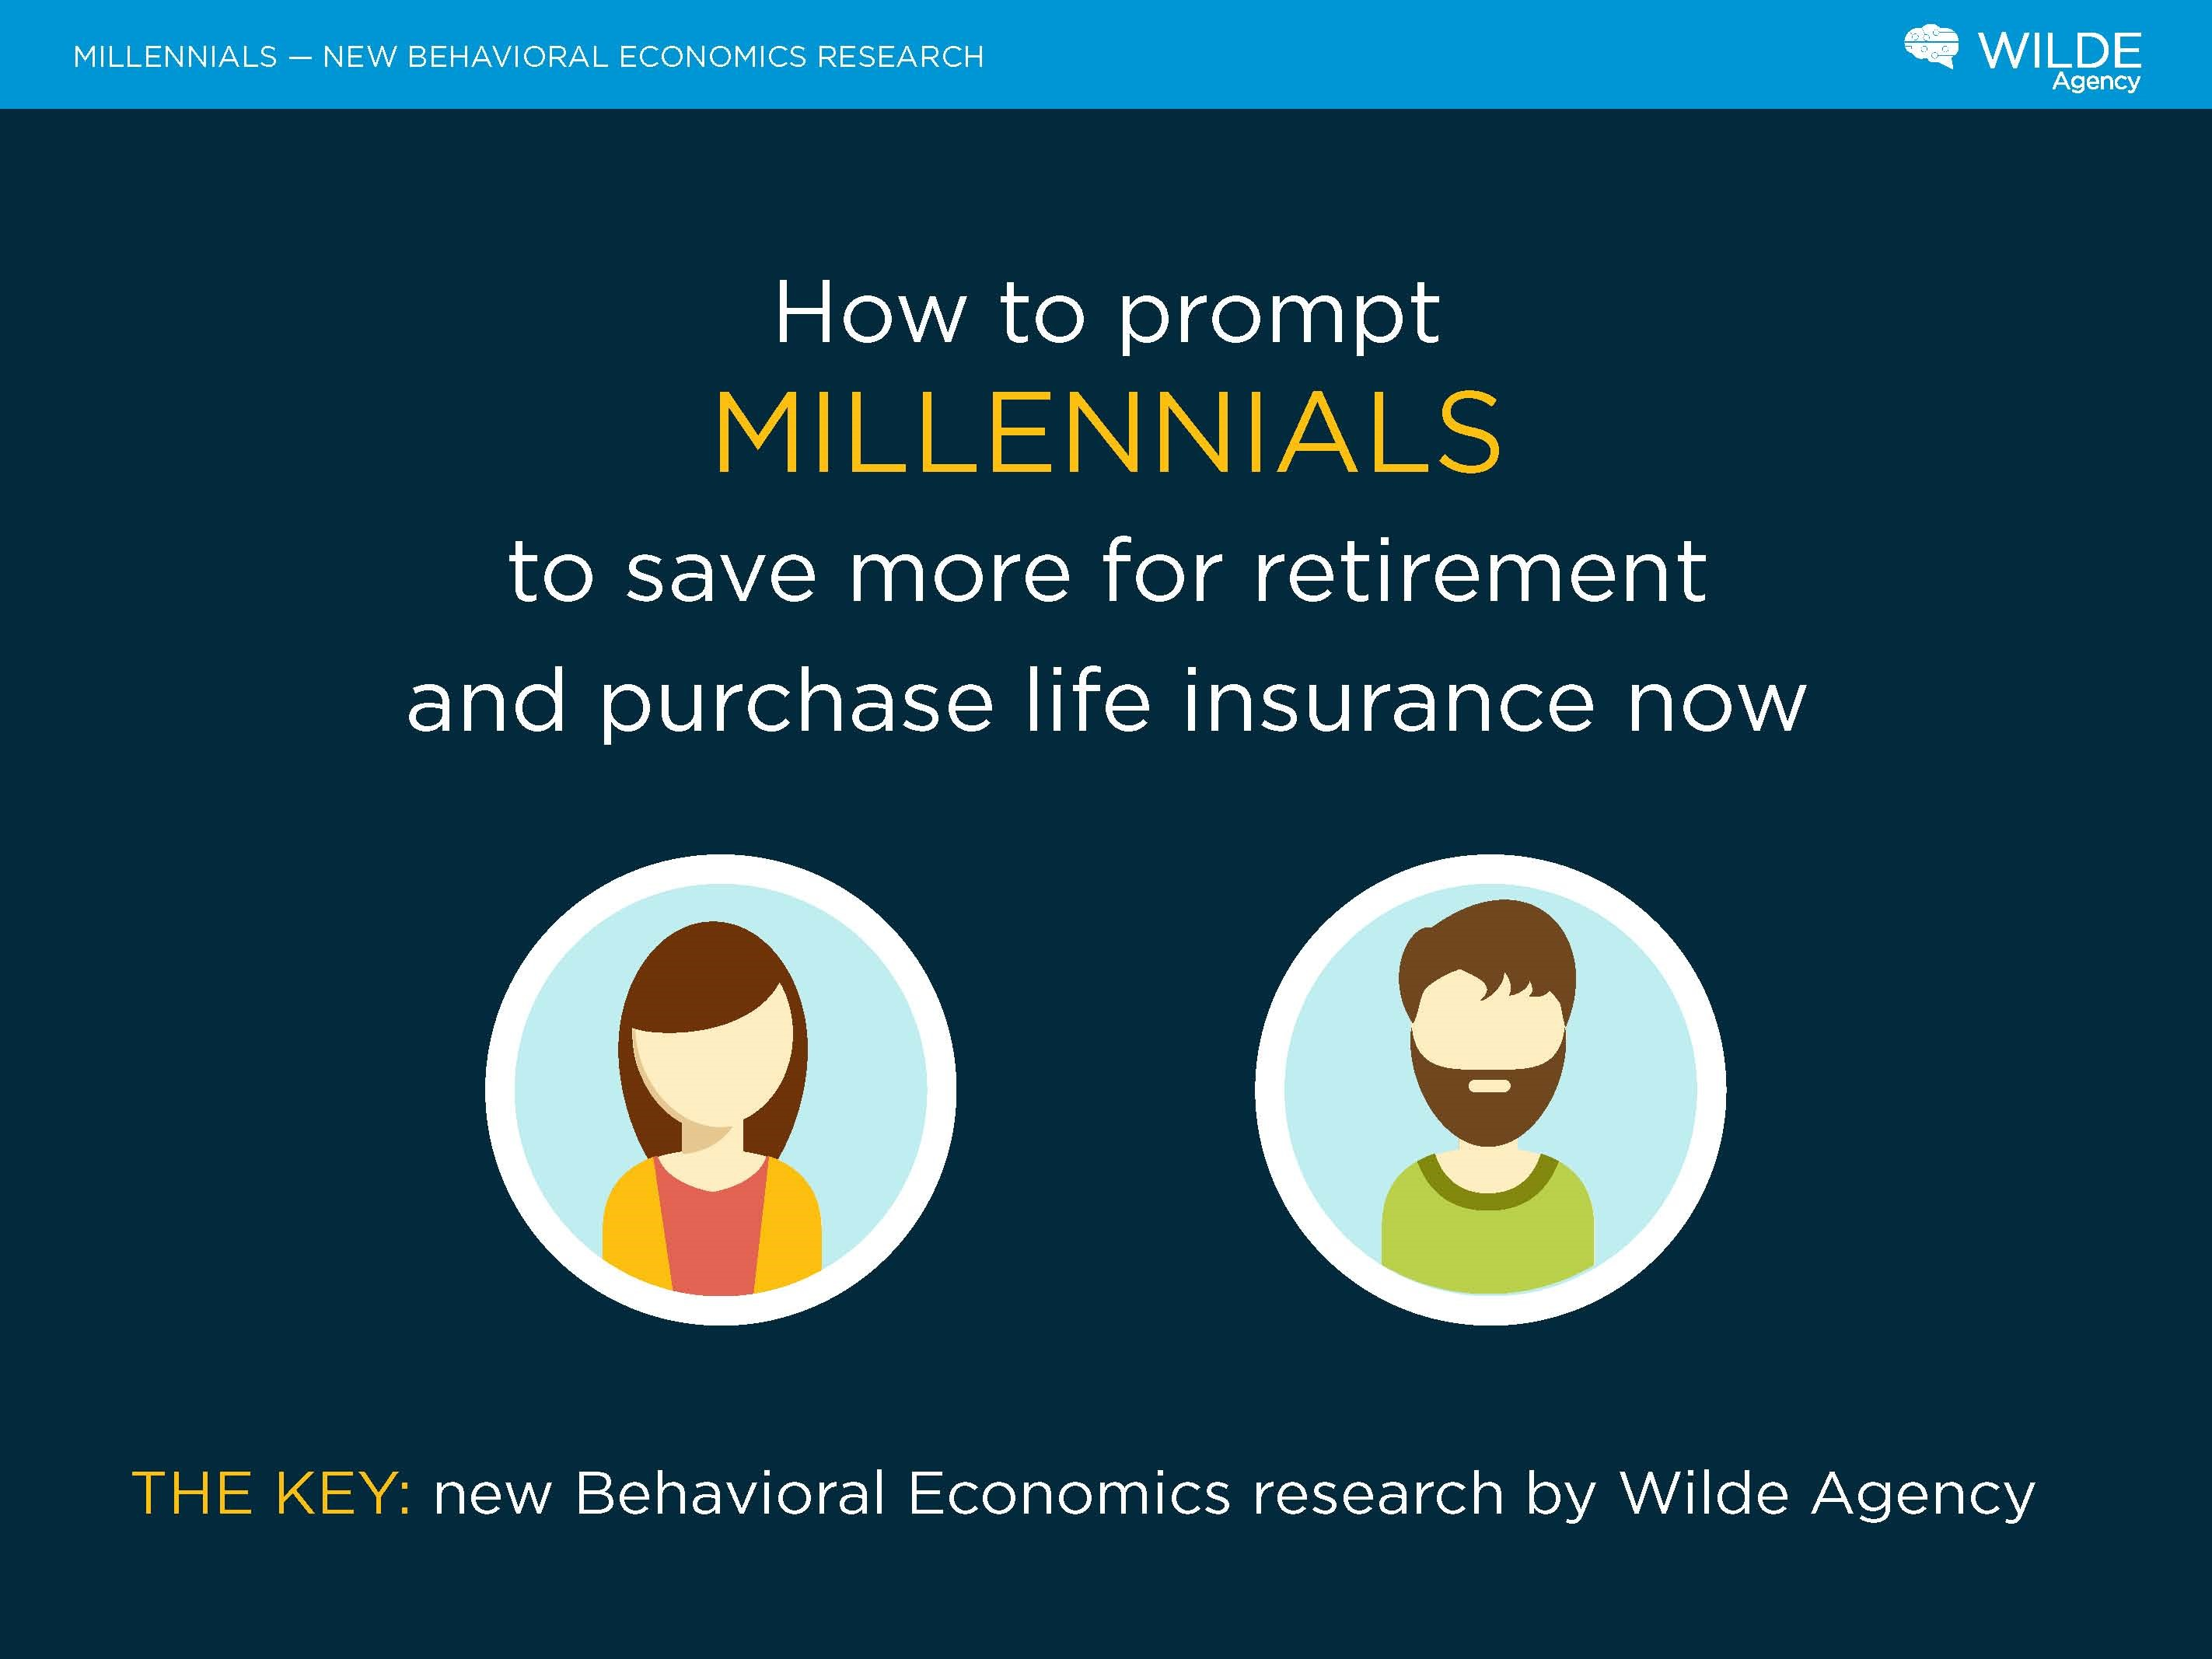 H2-Prompt-Millennials to save more for retirement